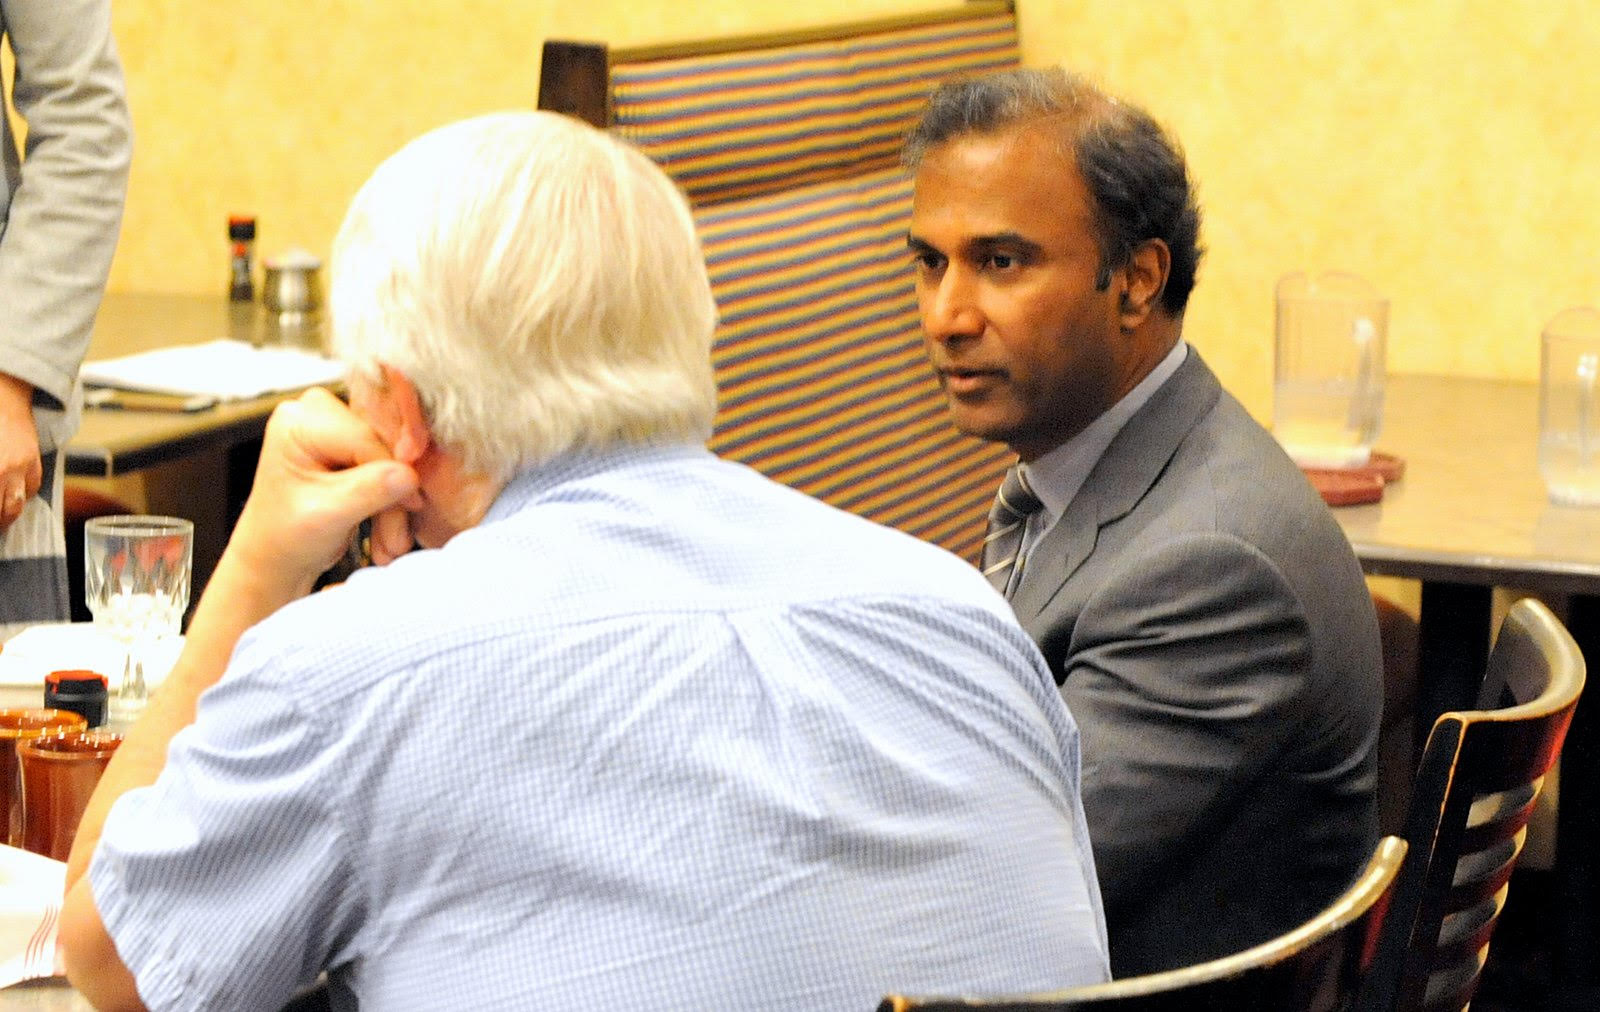 Dr. V.A. Shiva Ayyadurai at the luncheon meeting of Rotary Club of Acton-Boxborough